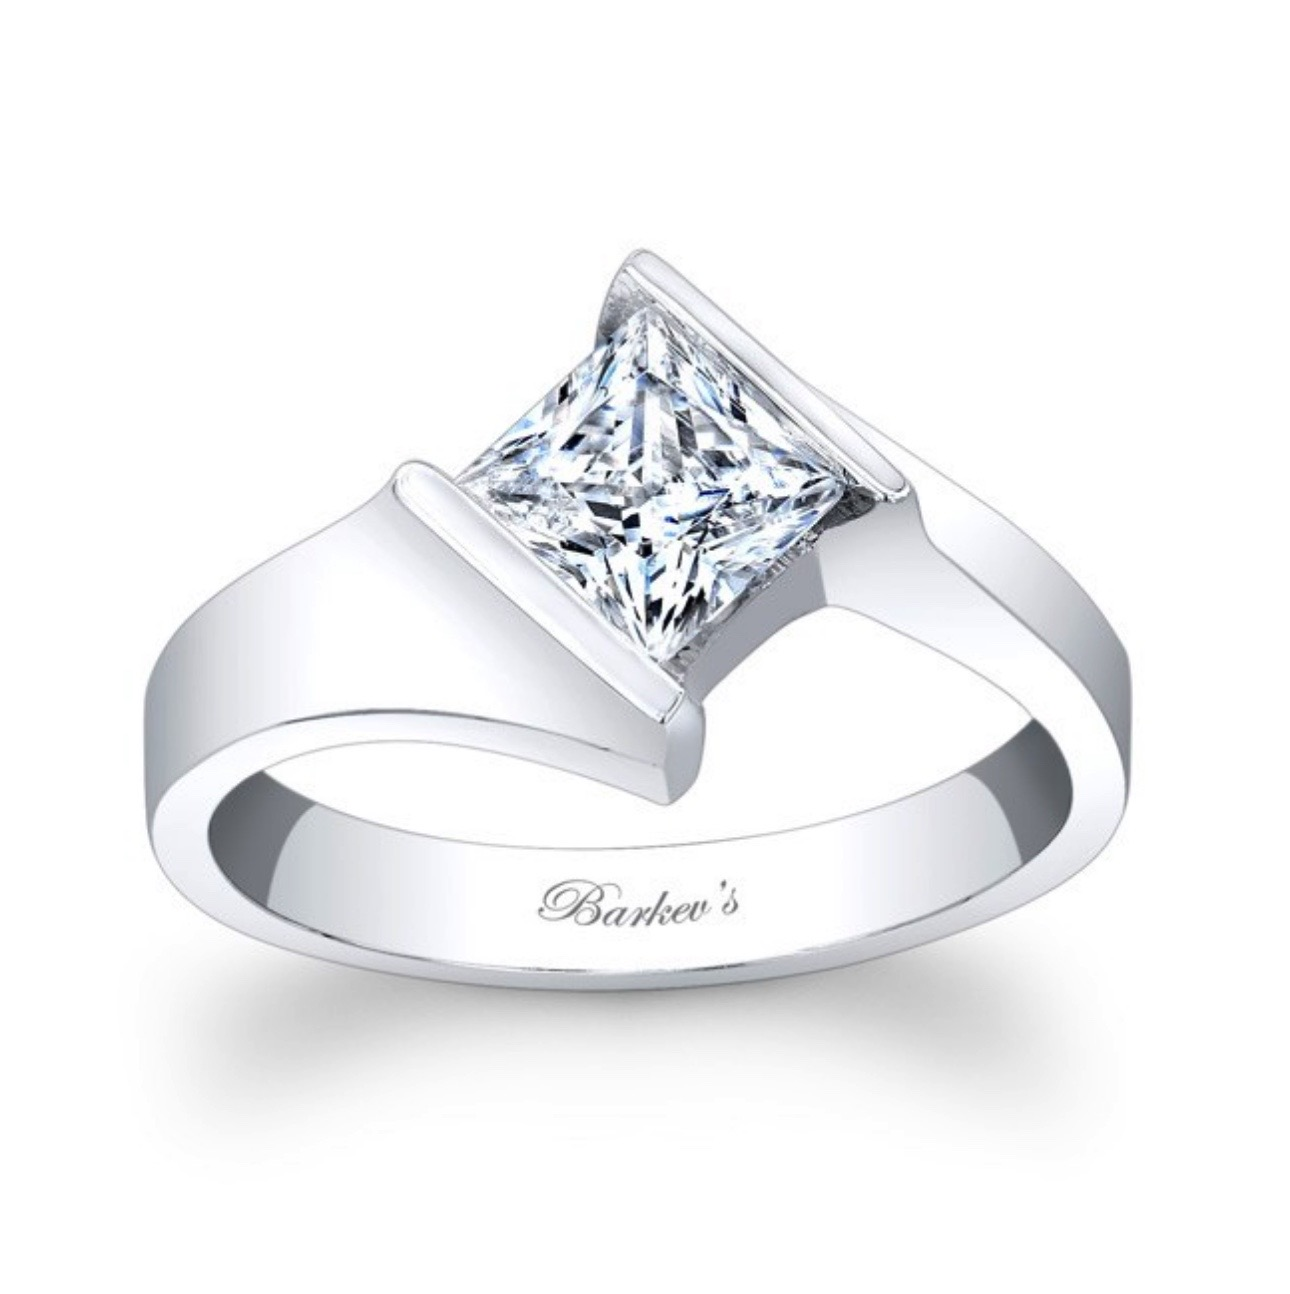 Princess Cut Solitaire Ring - 14K White Gold